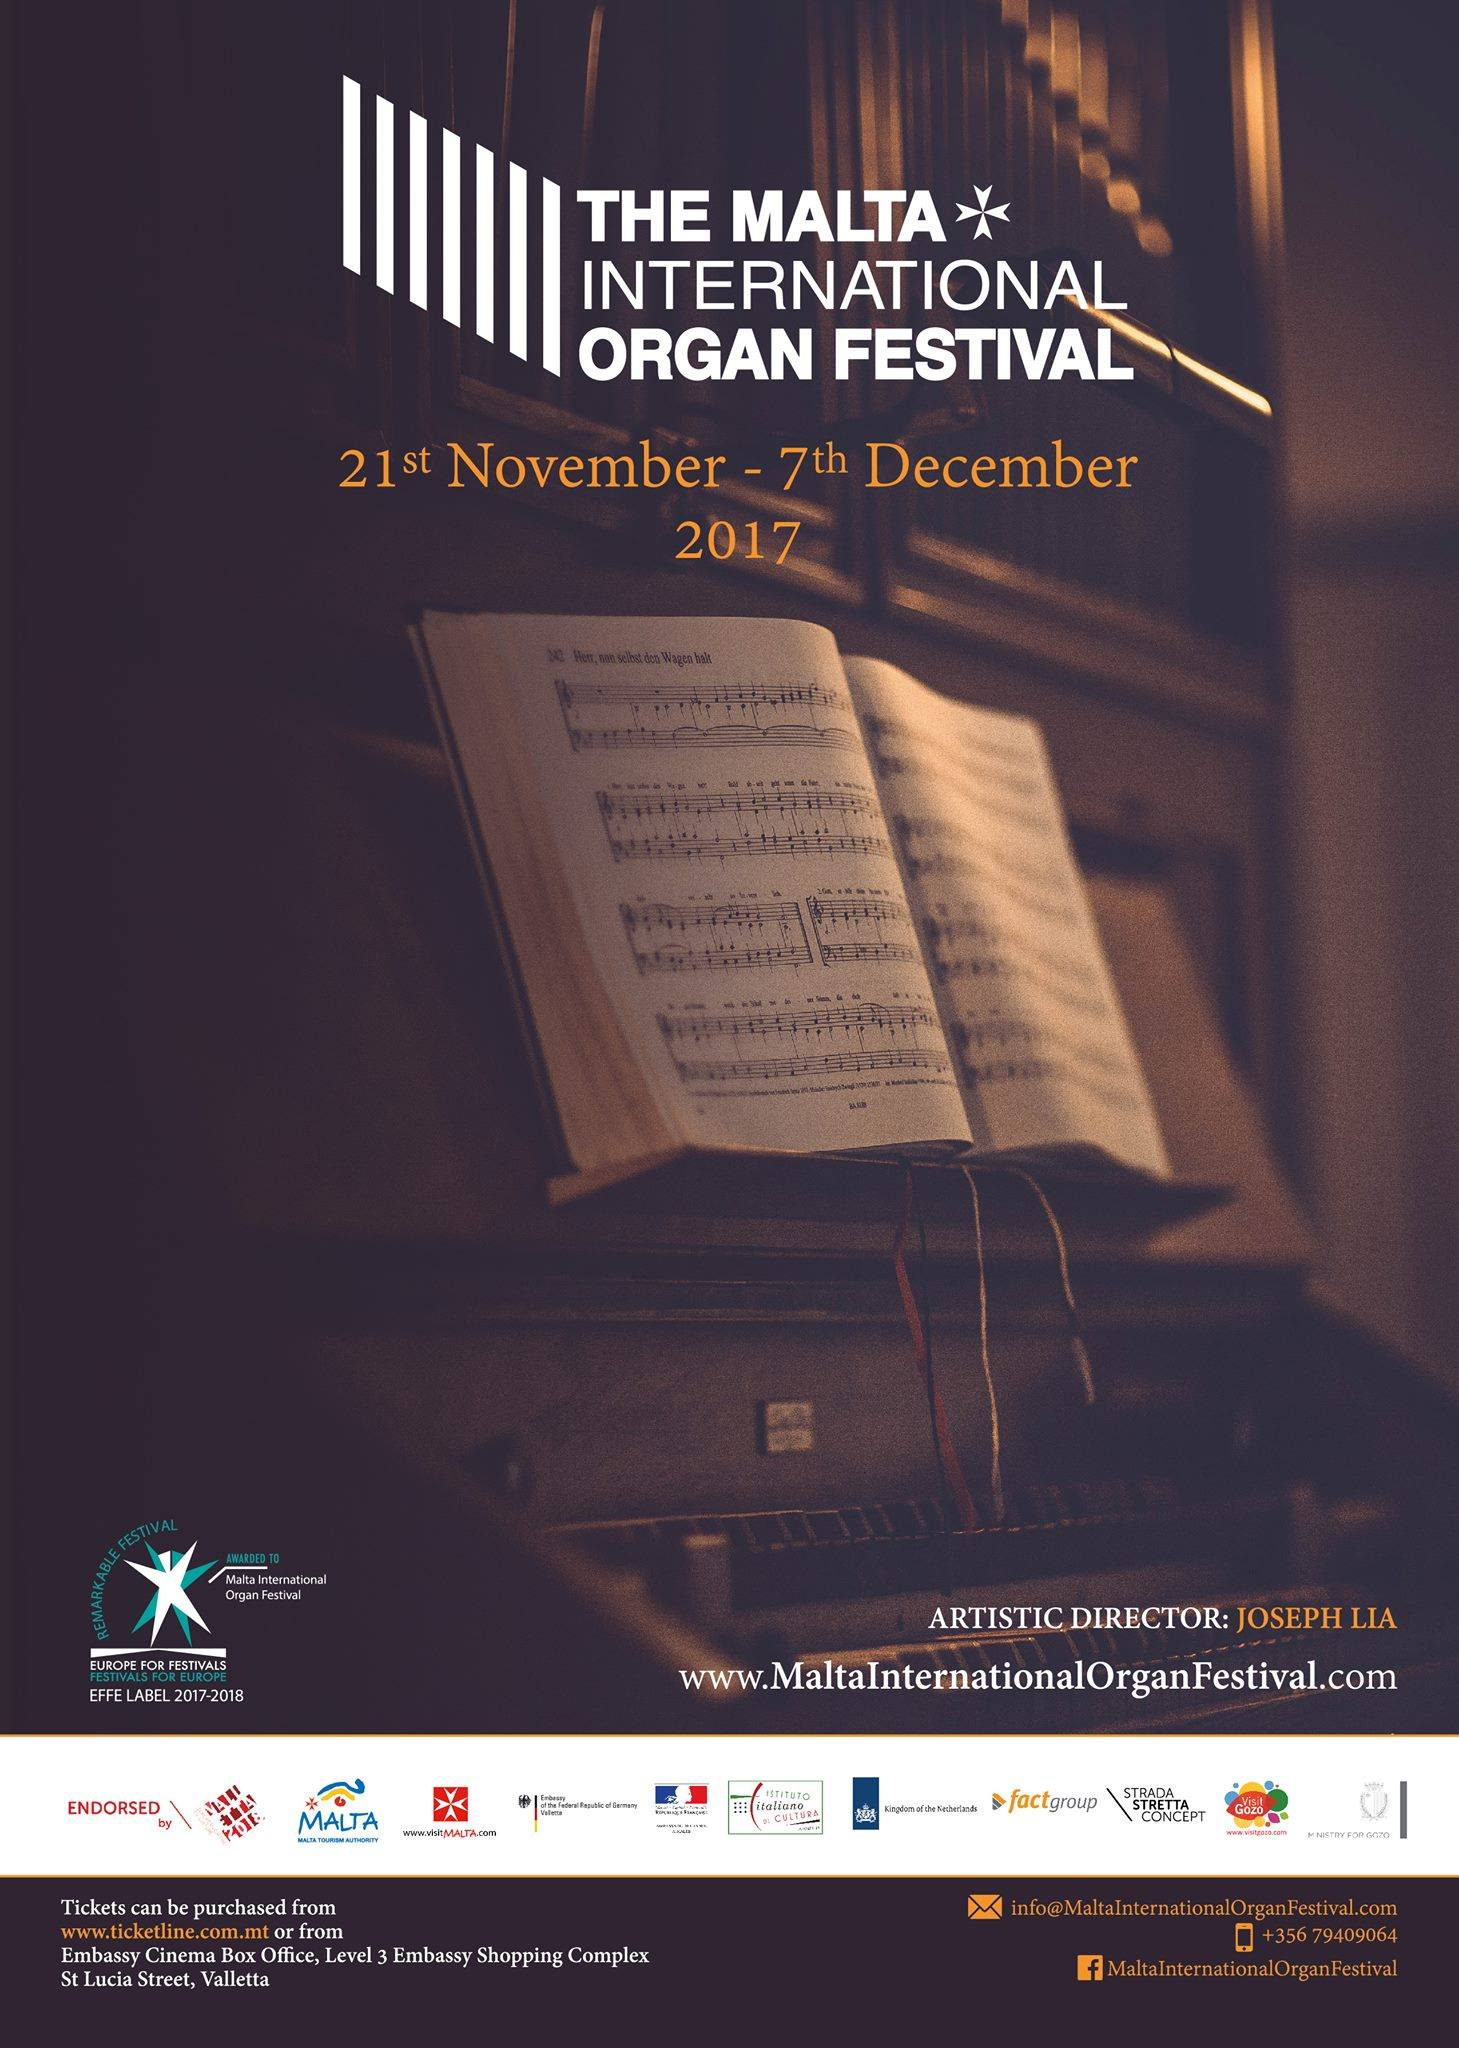 The Gaulitanus Choir at the Malta International Organ Festival